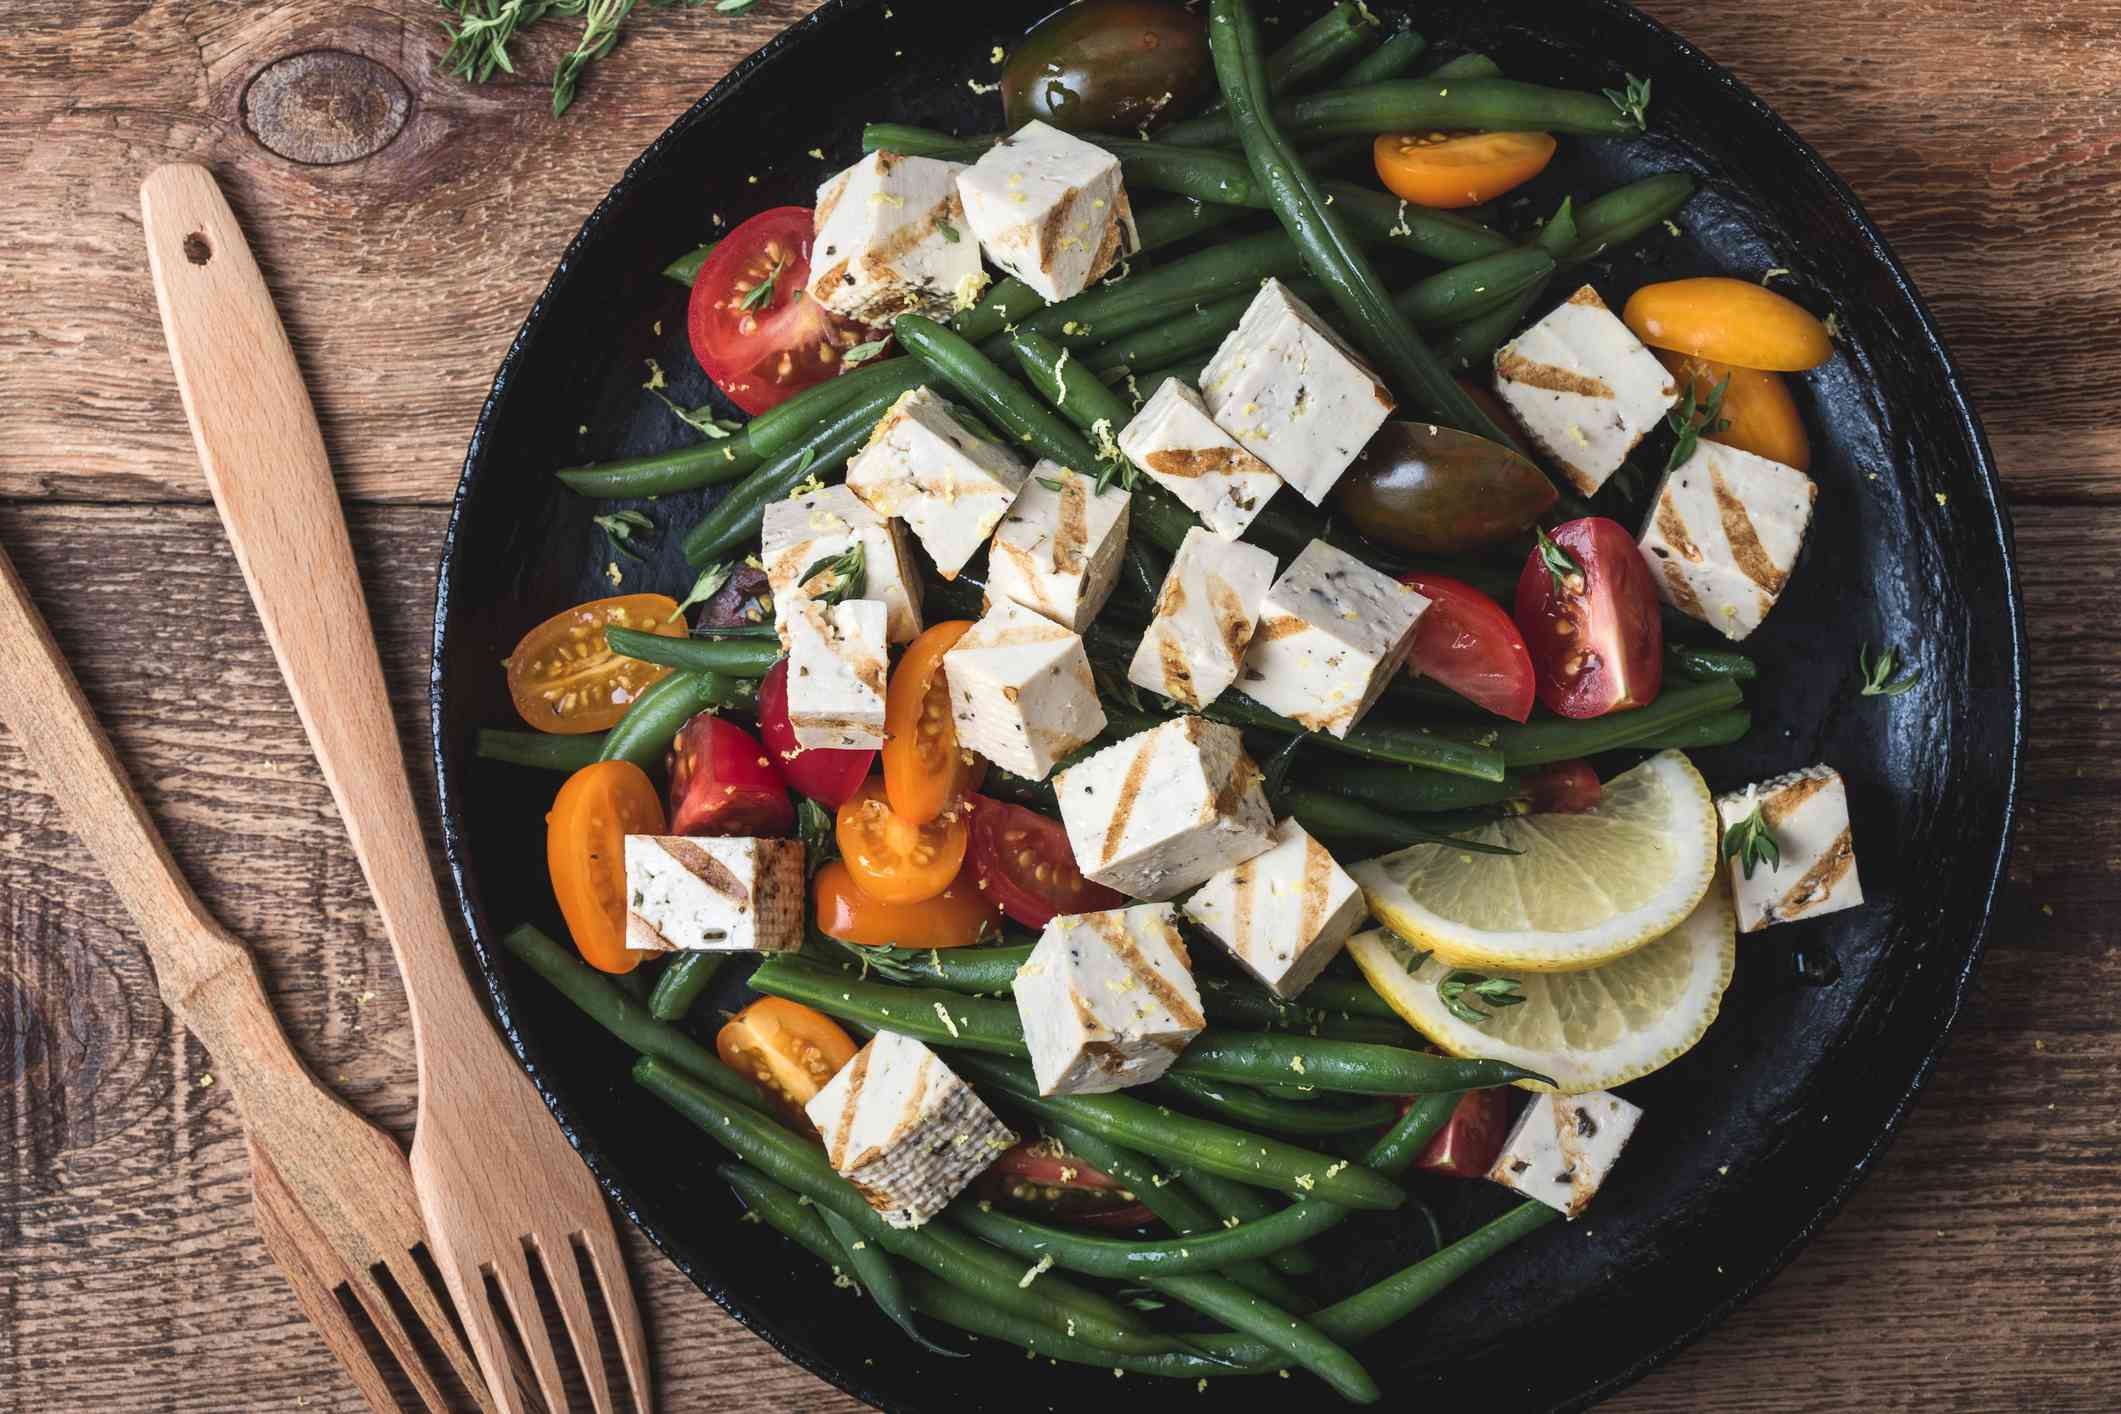 Vegan meal, healthy green beans salad with grilled tofu